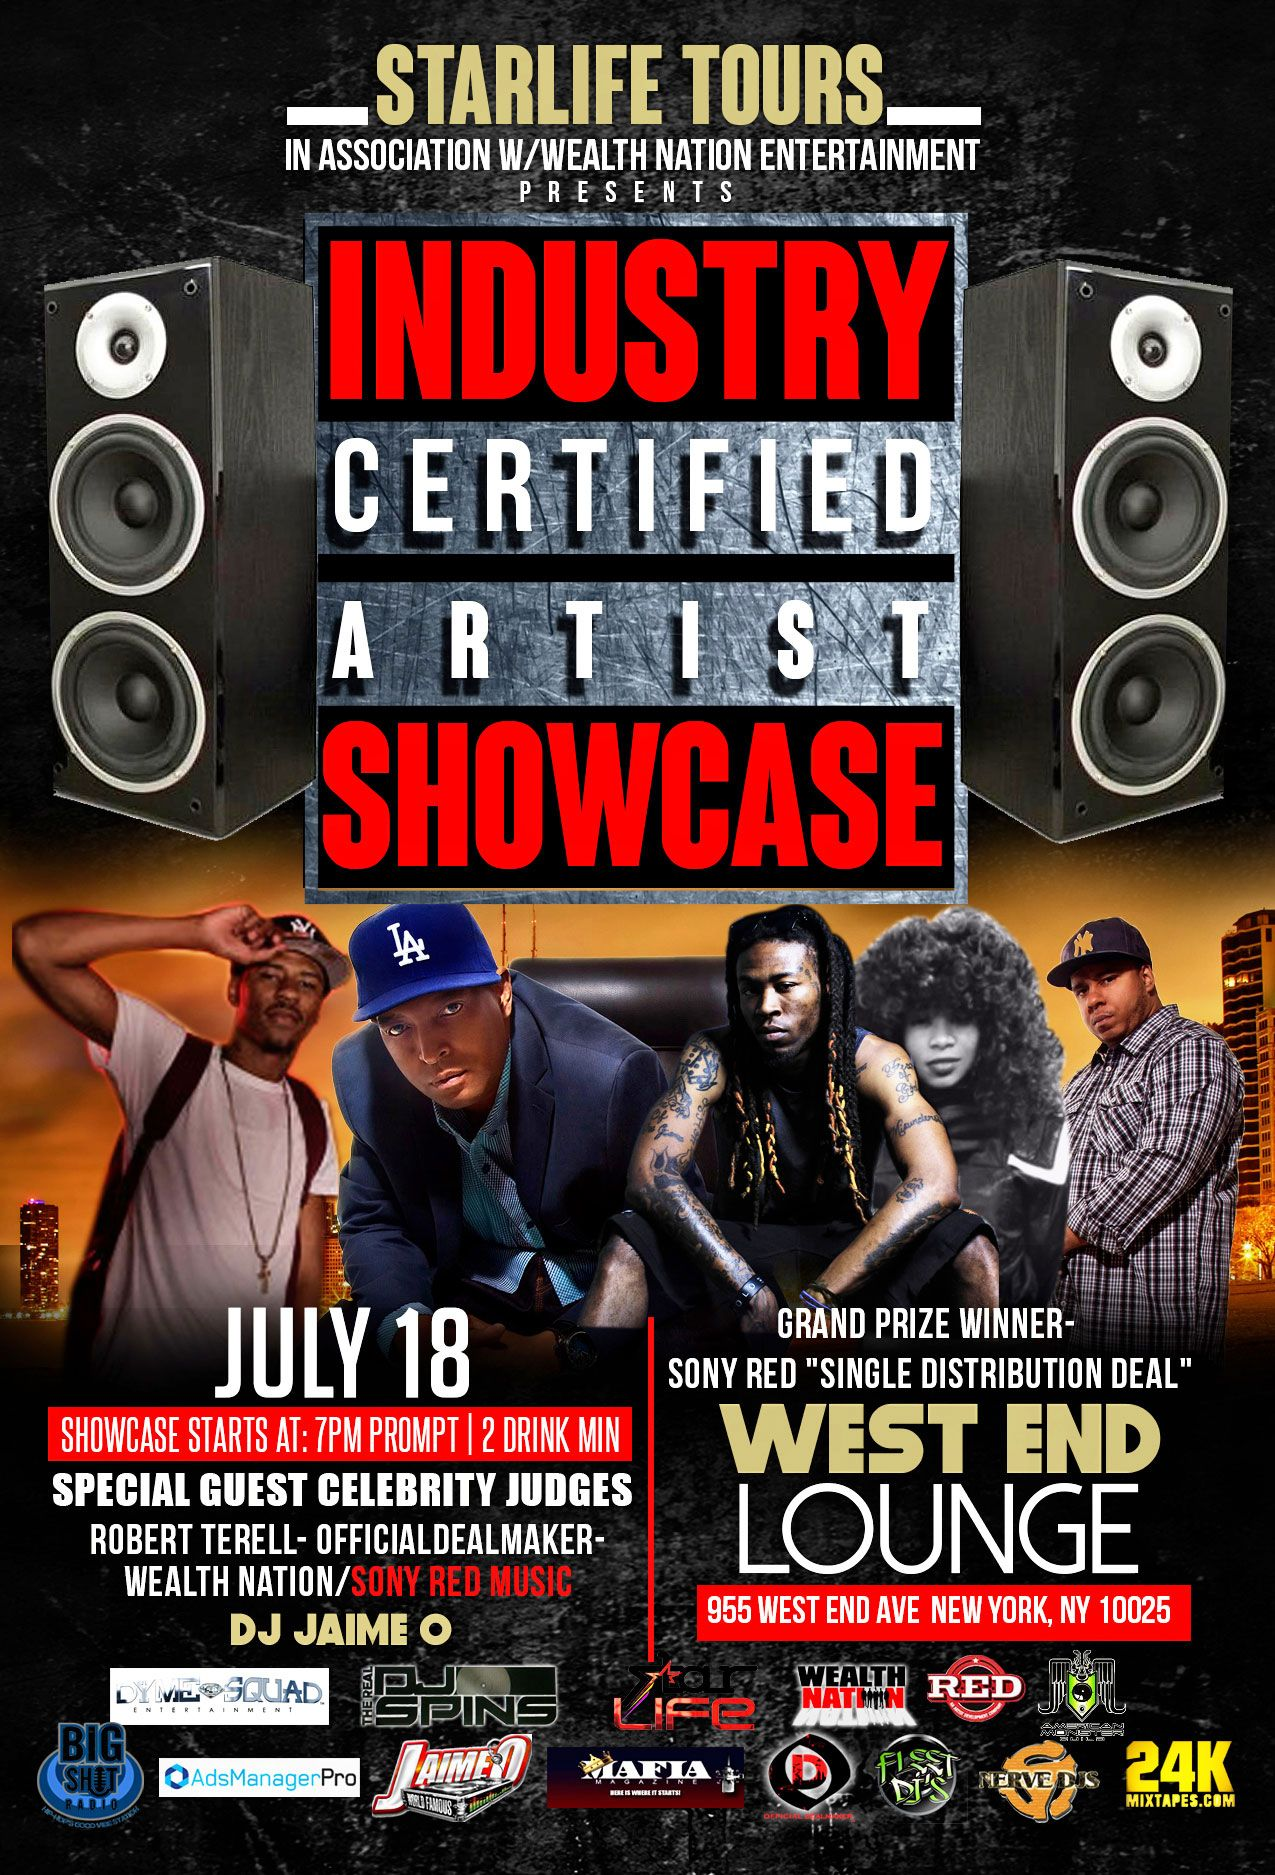 Industry Certified Artist Showcase Artwork Designed By Graphicwind For More Info Web Www Graphicwind Com Or Please Email Us To Poster Affiche Affiche Poster